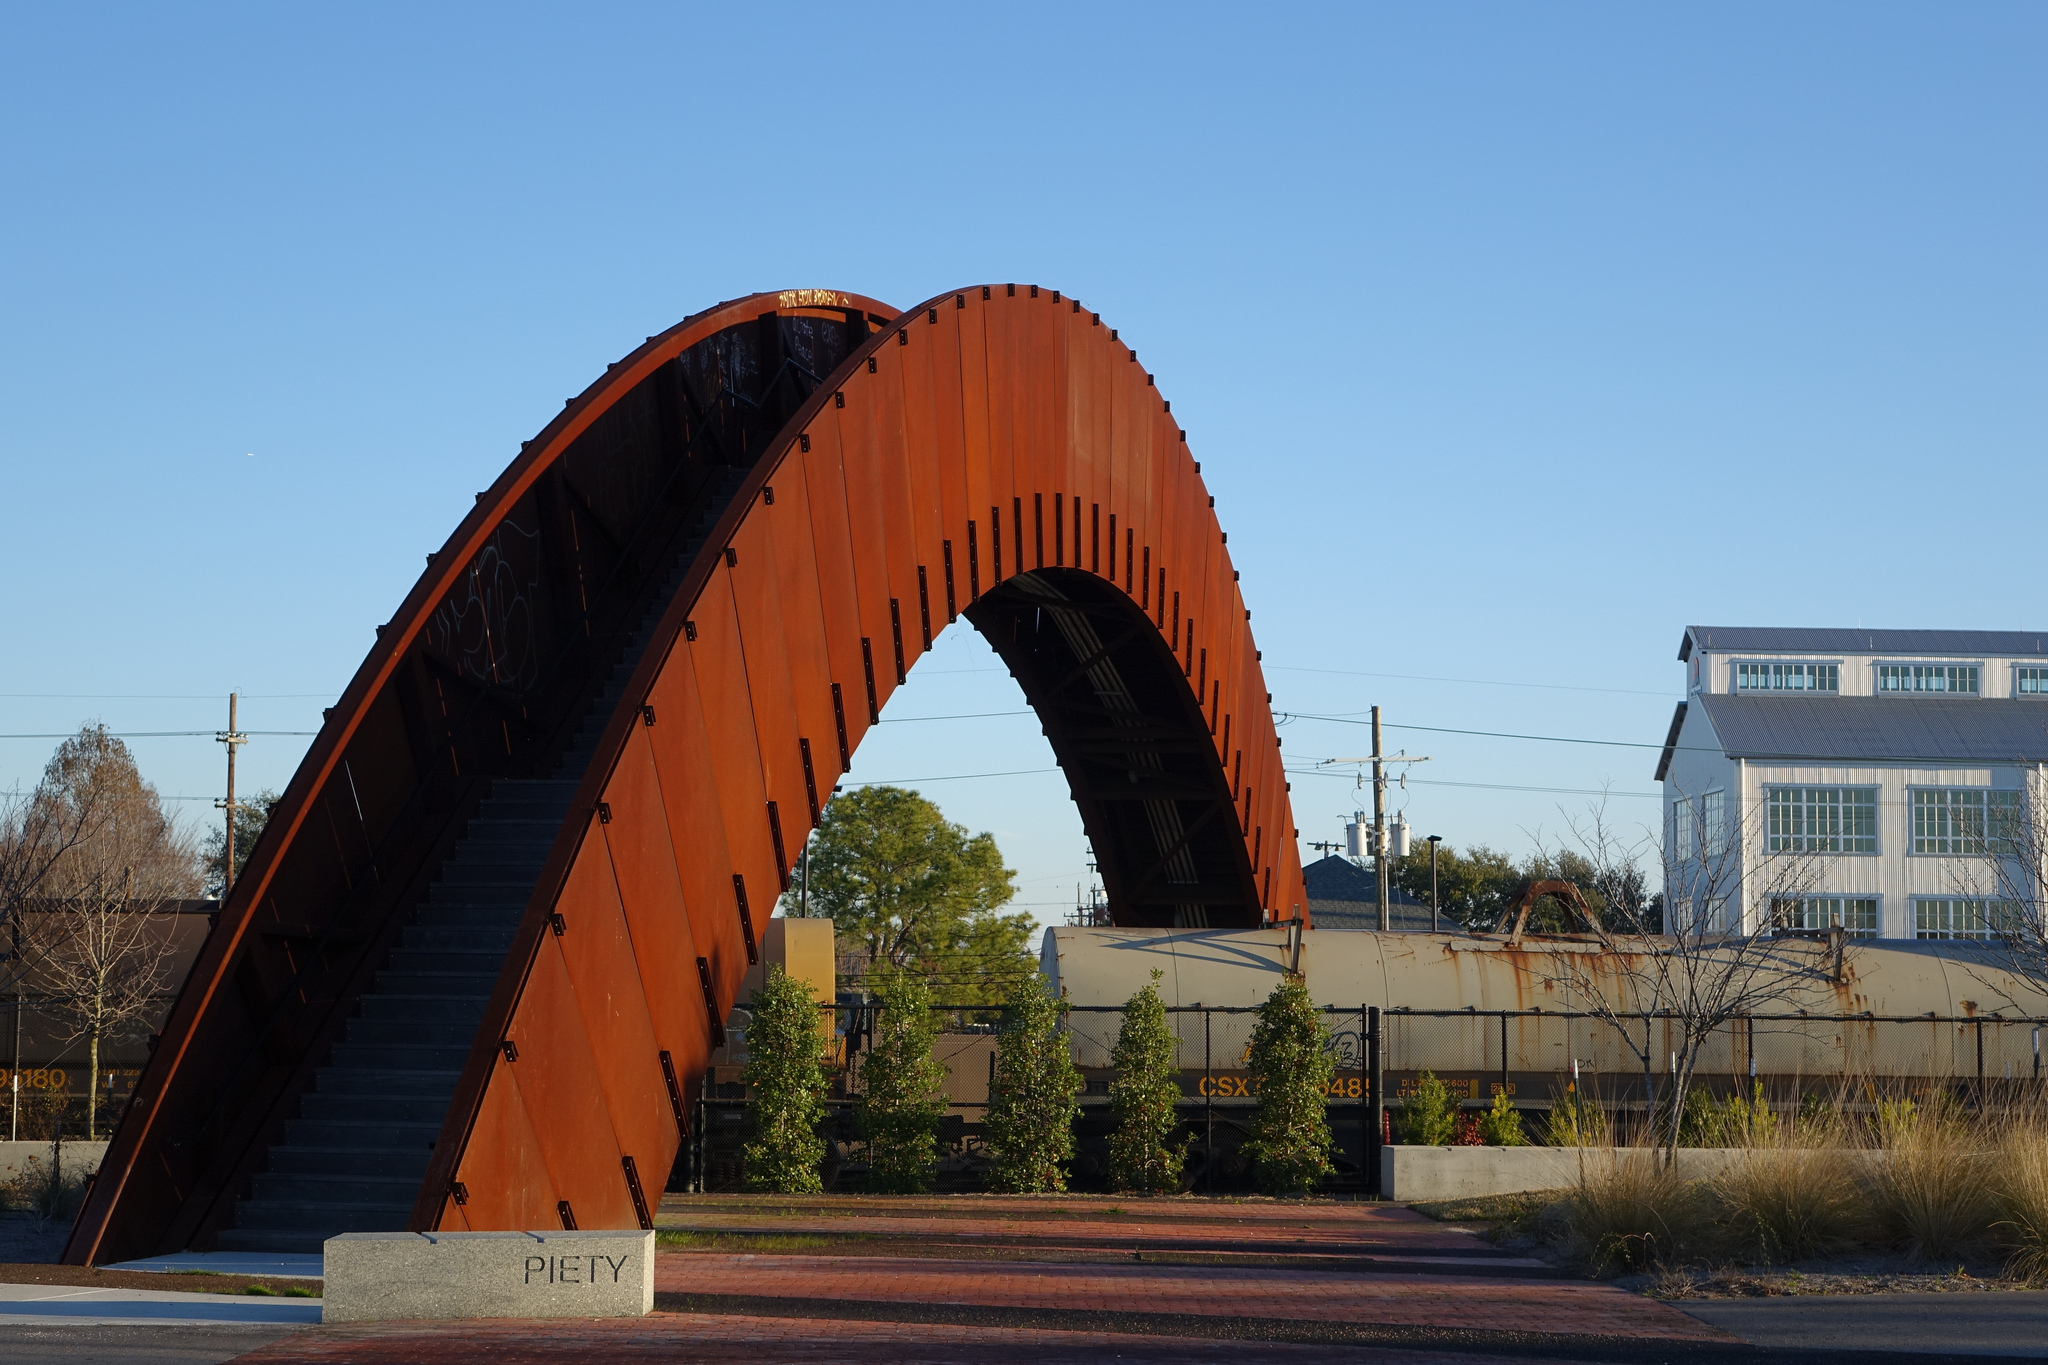 The Piety Street pedestrian bridge at Crescent Park (photo: Paul Broussard)